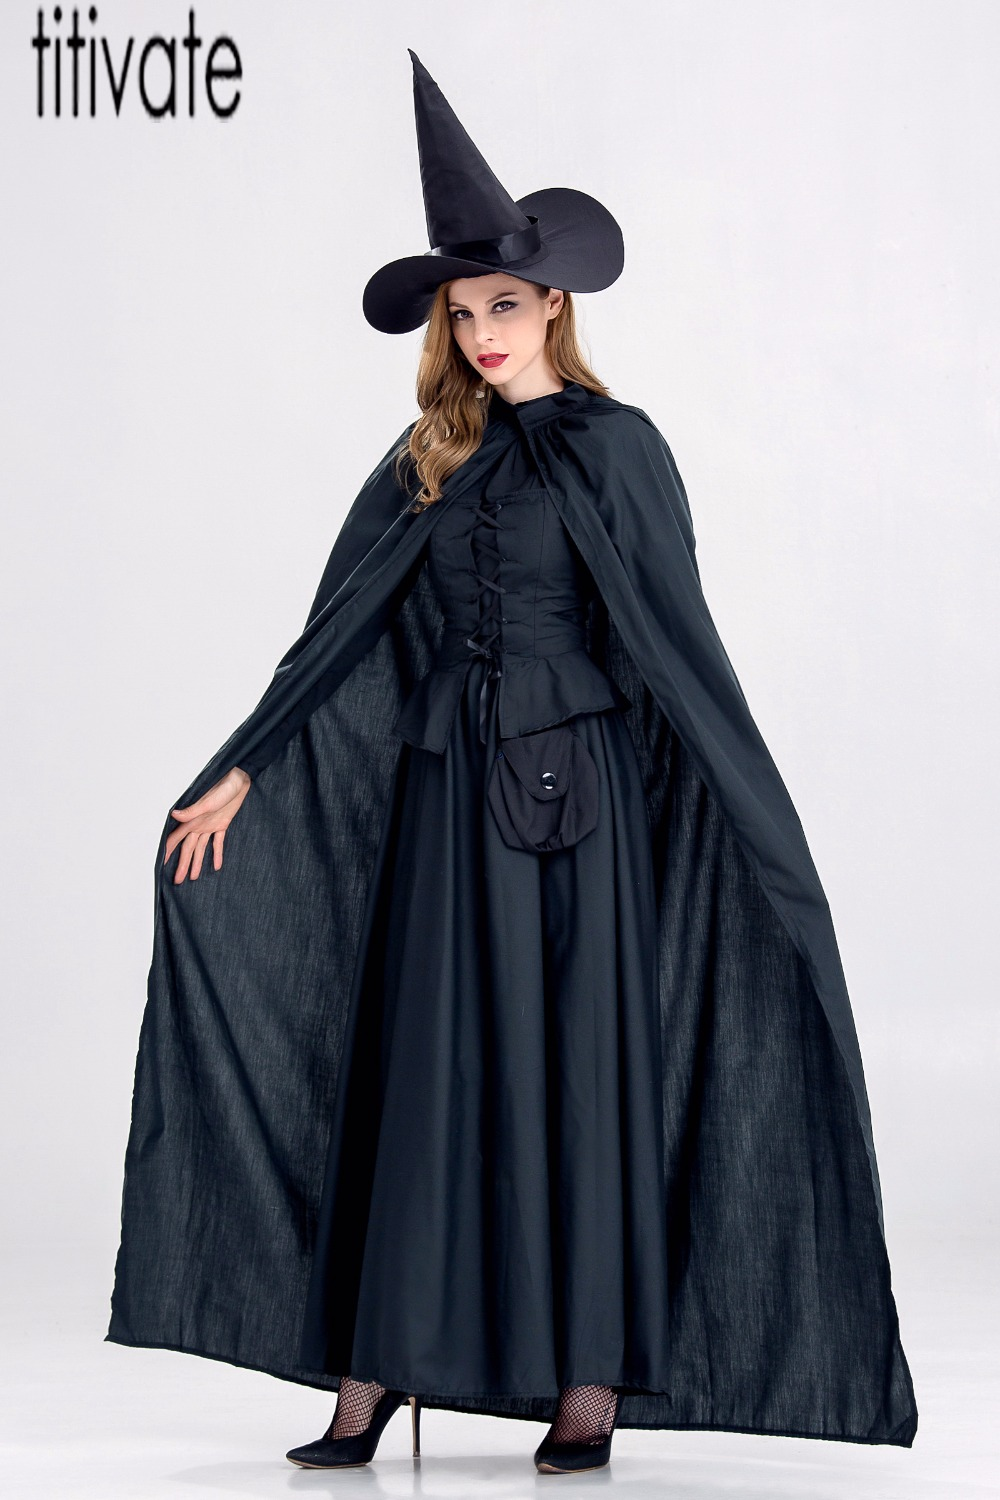 TITIVATE Gothic Witch Sorceress Halloween Costume Black Wicked Witch Cosplay Hen Party Fancy Dress Costumes Outfit For Women